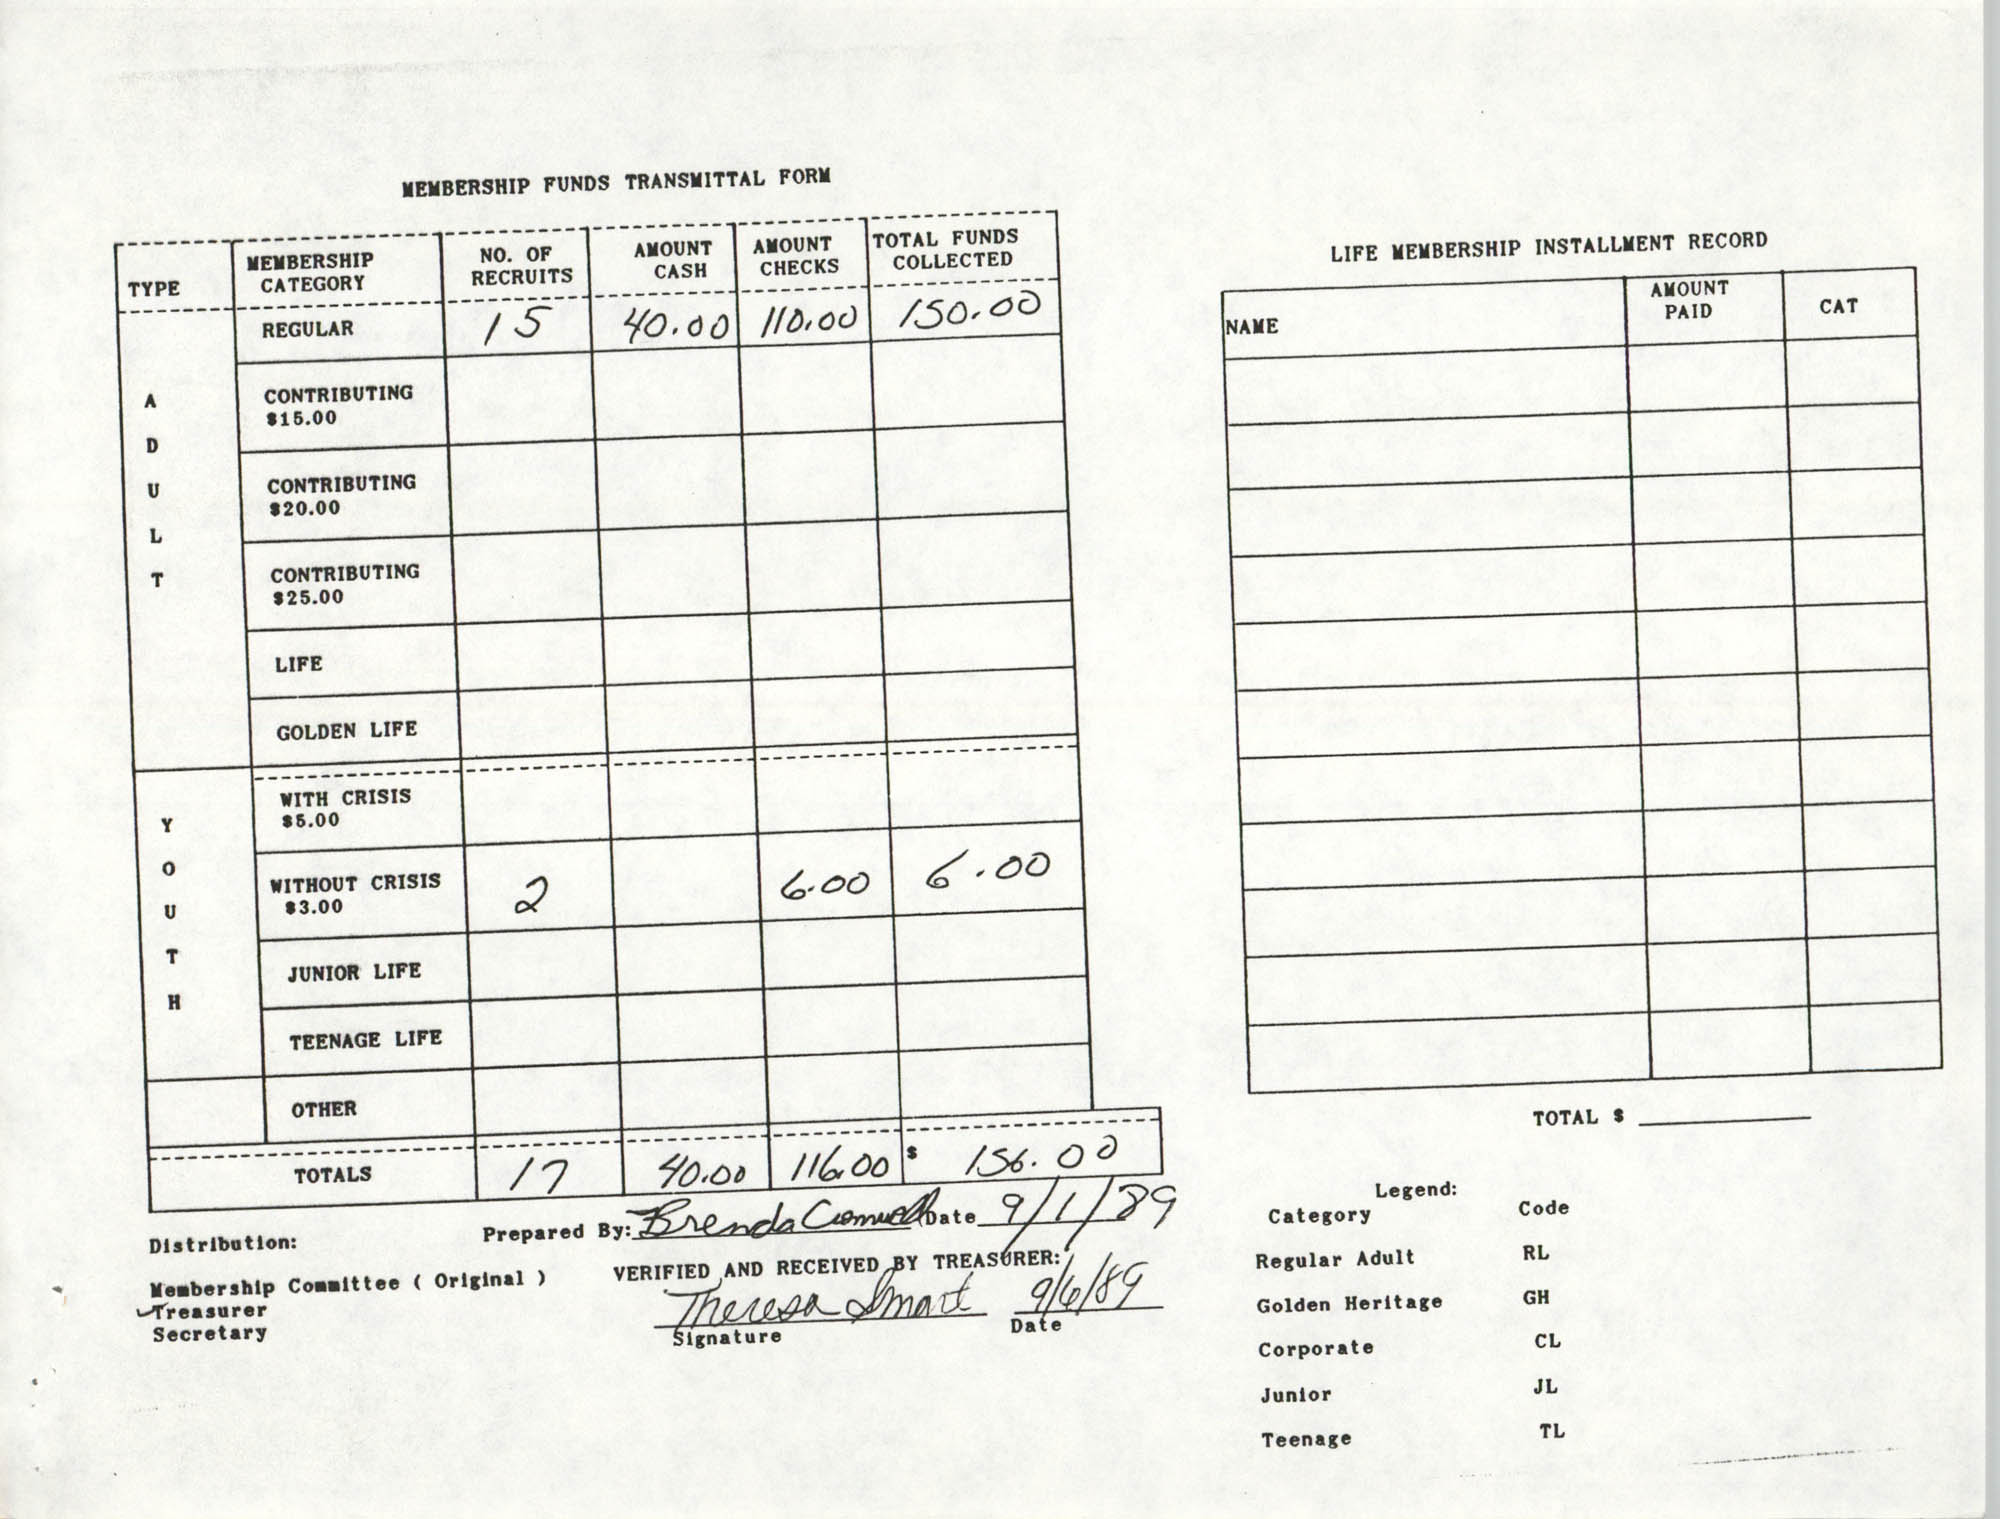 Charleston Branch of the NAACP Funds Transmittal Forms, September 1989, Page 1